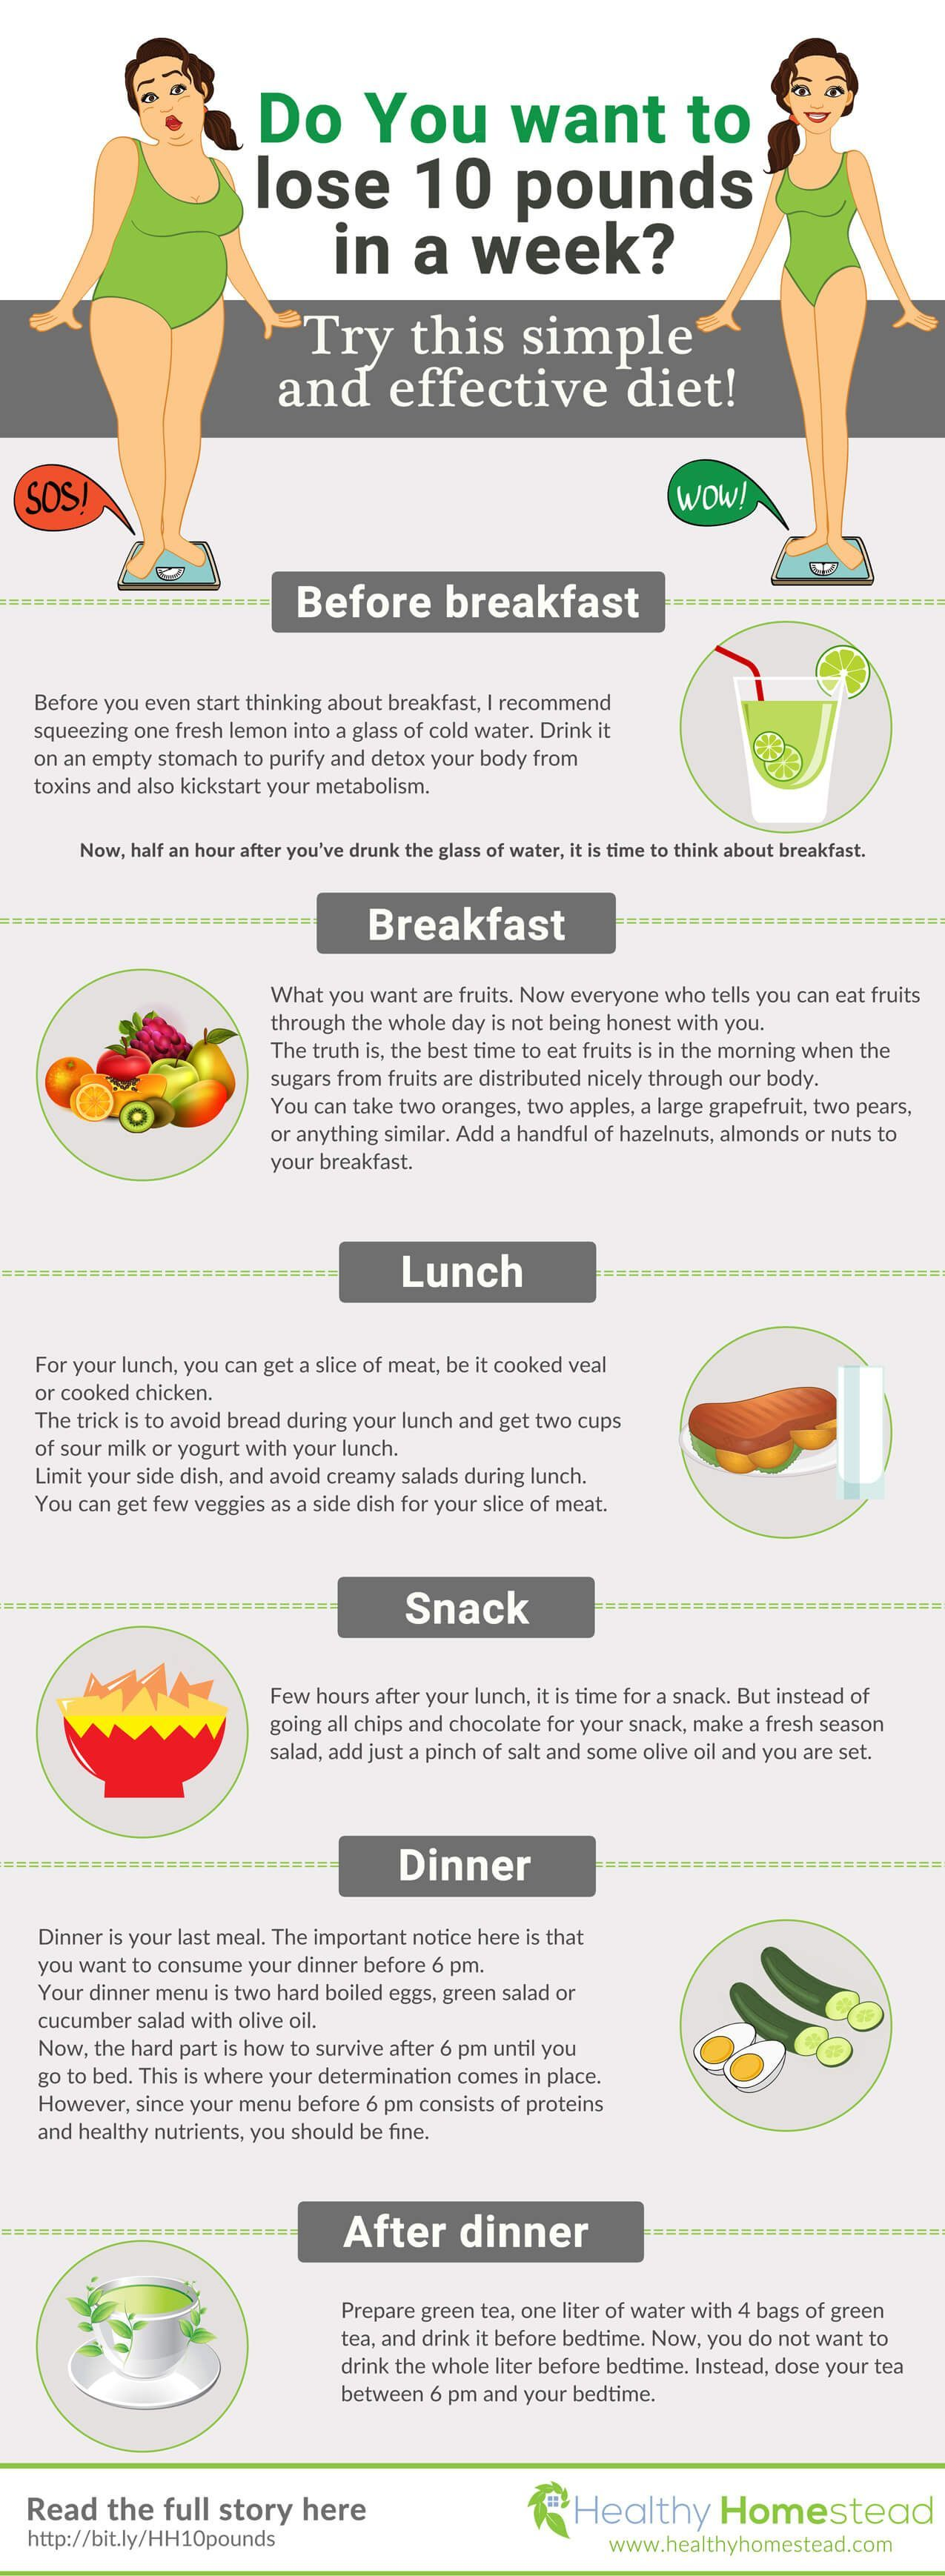 Good diet plan to build muscle